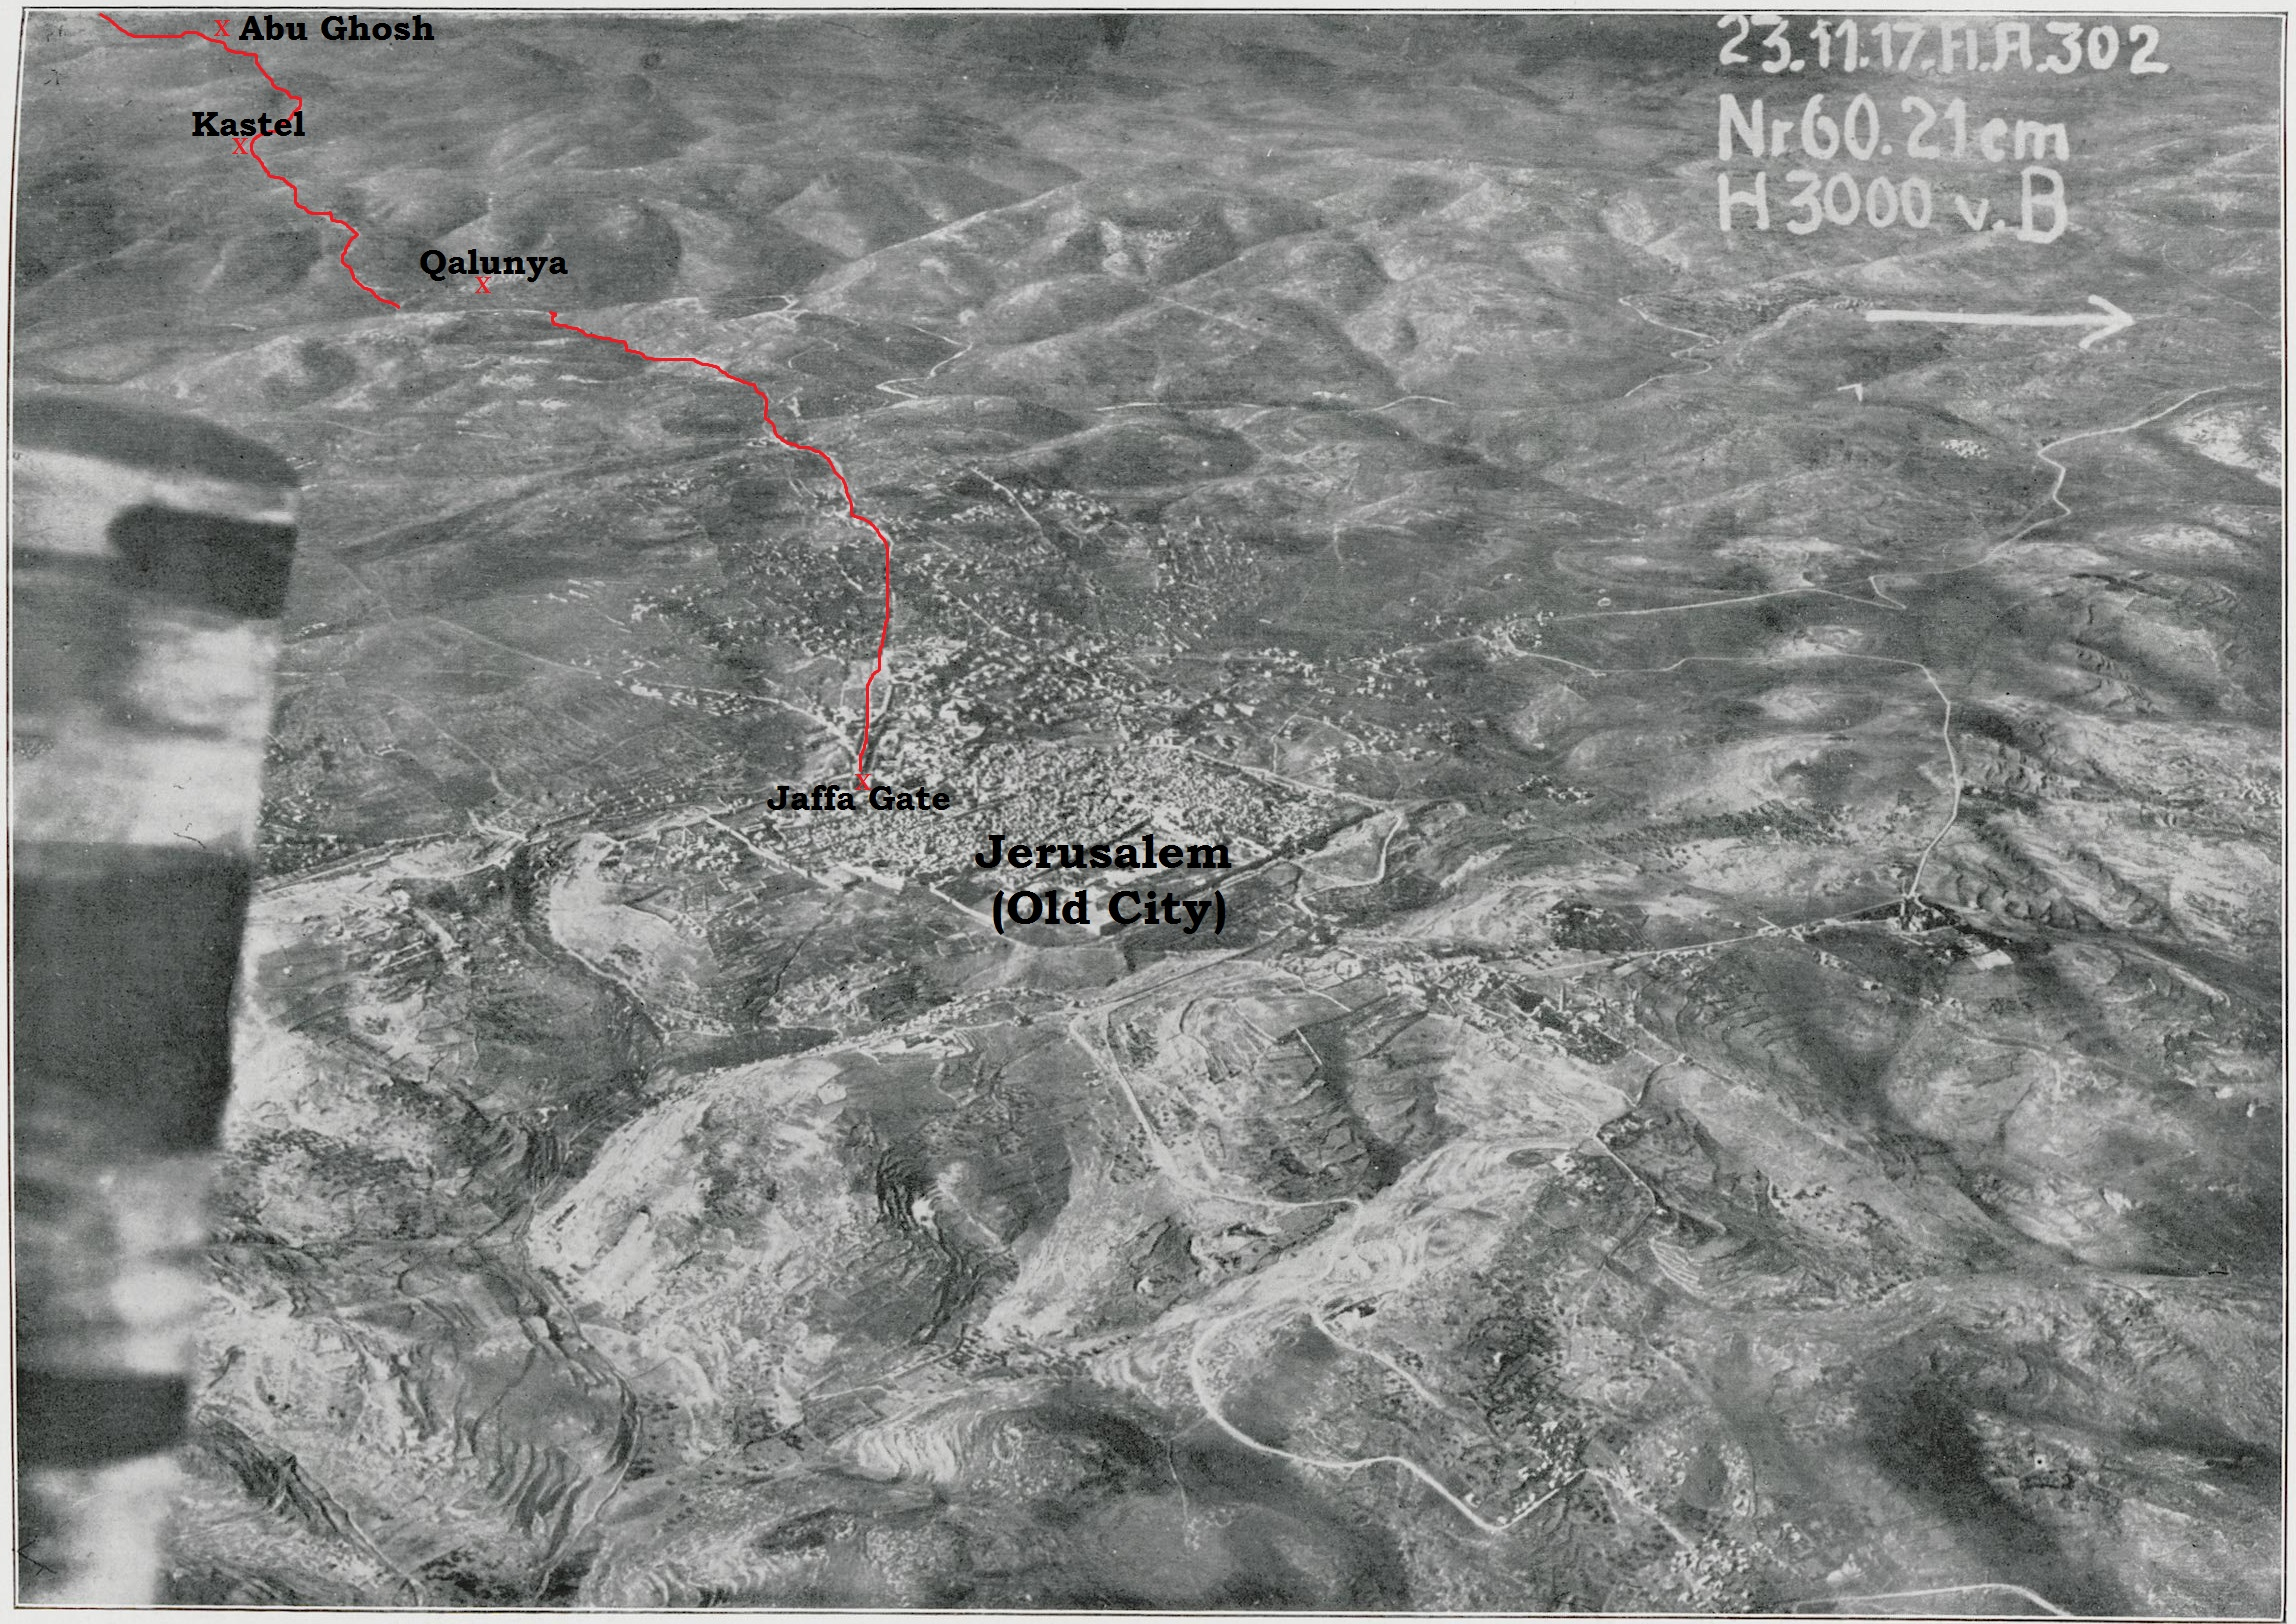 Aerial photograph of Jerusalem's environs from Gustaf Dalman's Hundert deutsche Fliegerbilder aus Palästina (Gütersloh: Bertelsmann, 1925). Superimposed on the photograph is the approximate route of the Emmaus-Jerusalem road marked in red. Part of the route is hidden from view as the road descends into the valley as it approaches Qalunya.